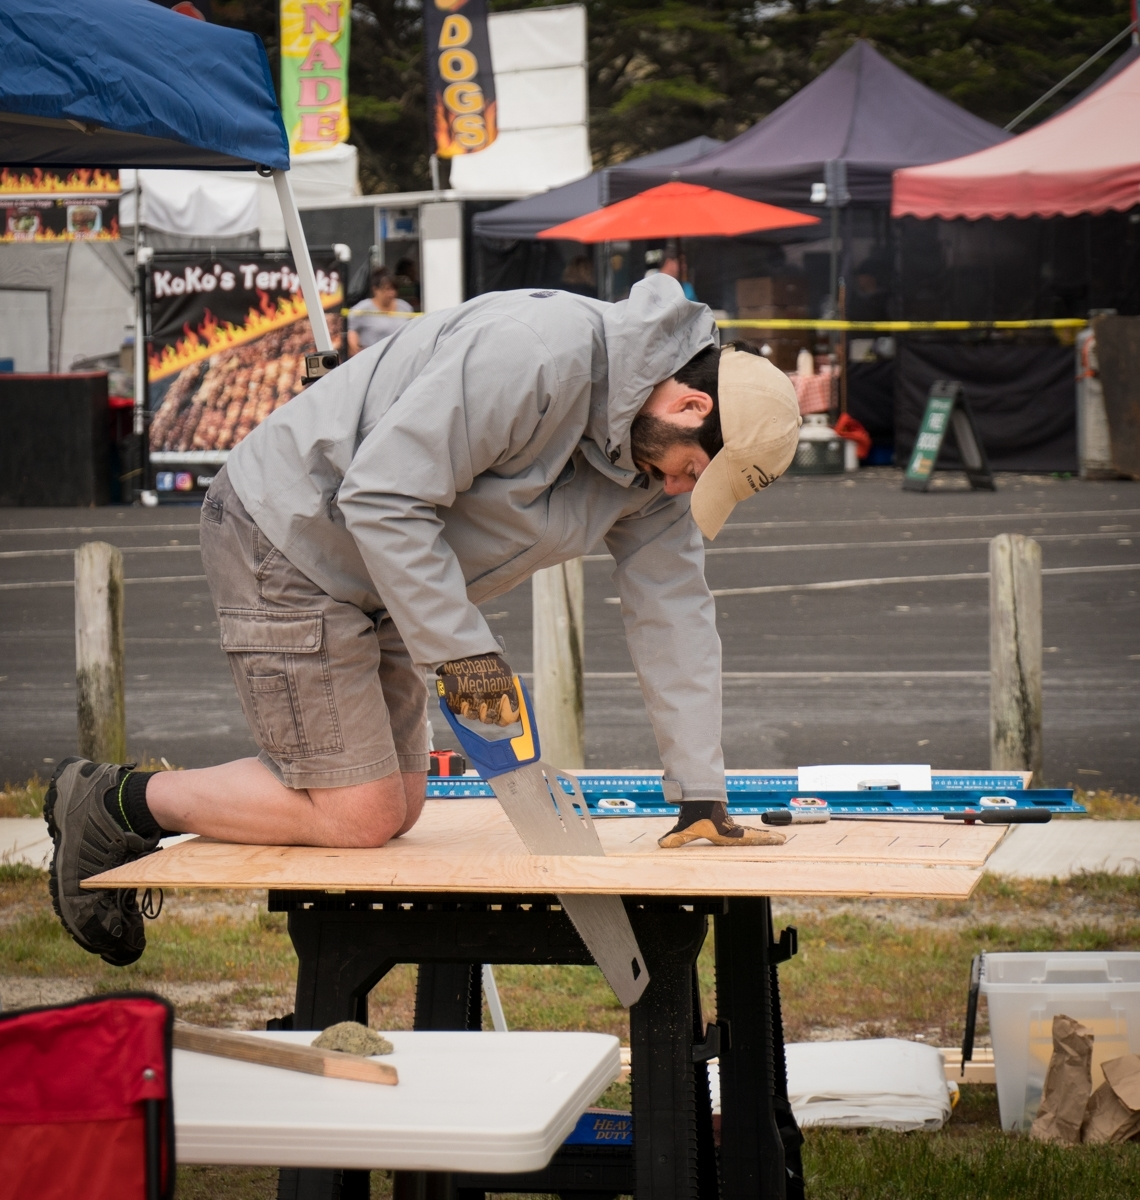 At-the-Bodega-Bay-Fishermans-Festival-boat-building-contest-the-only-power-tools-allowed-are-screwdrivers.-JI-1-Place-by-Ellen-Storz-SR